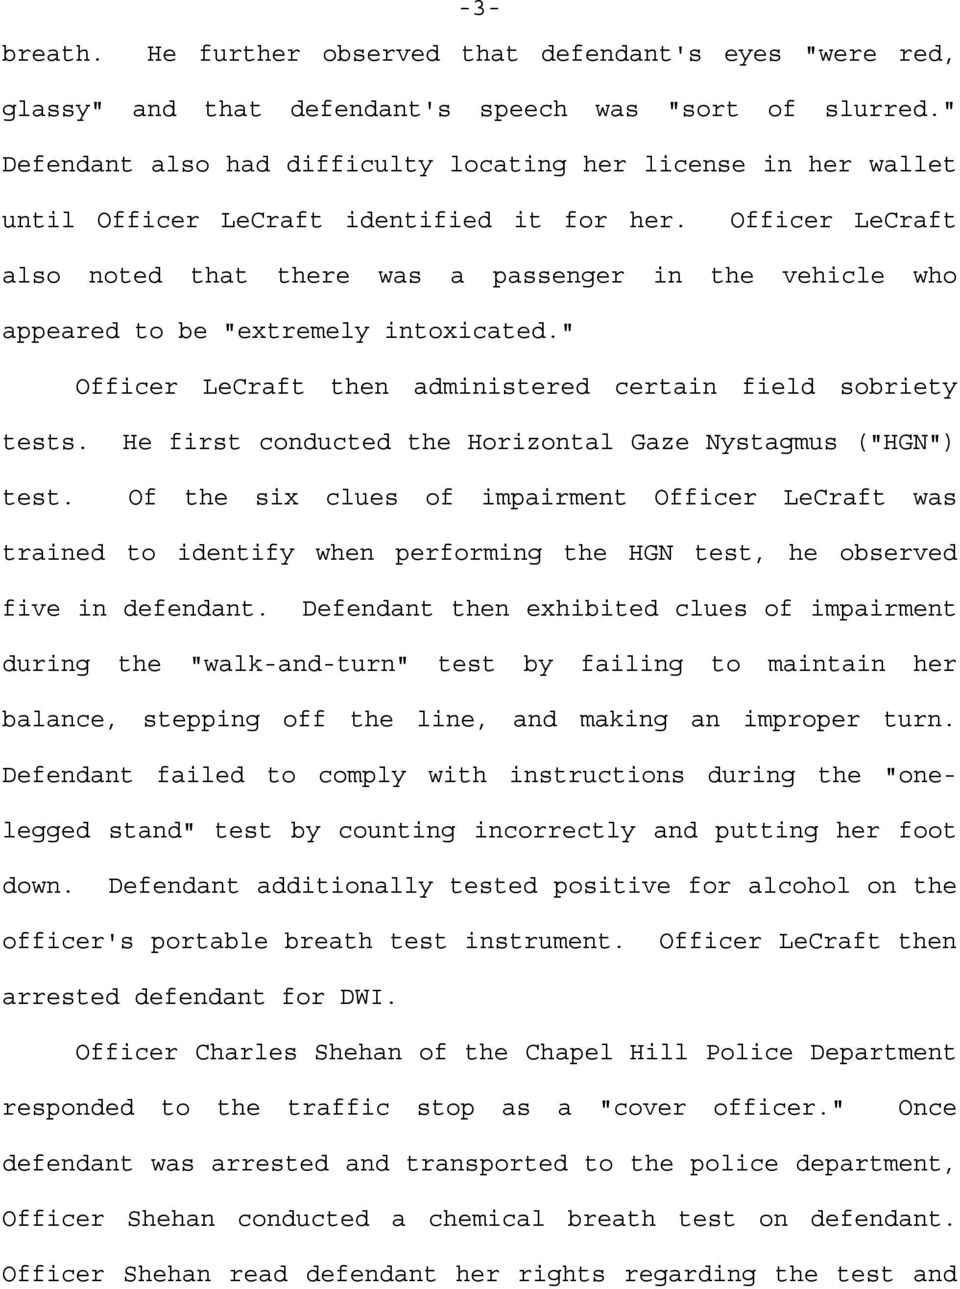 "Officer LeCraft also noted that there was a passenger in the vehicle who appeared to be ""extremely intoxicated."" Officer LeCraft then administered certain field sobriety tests."